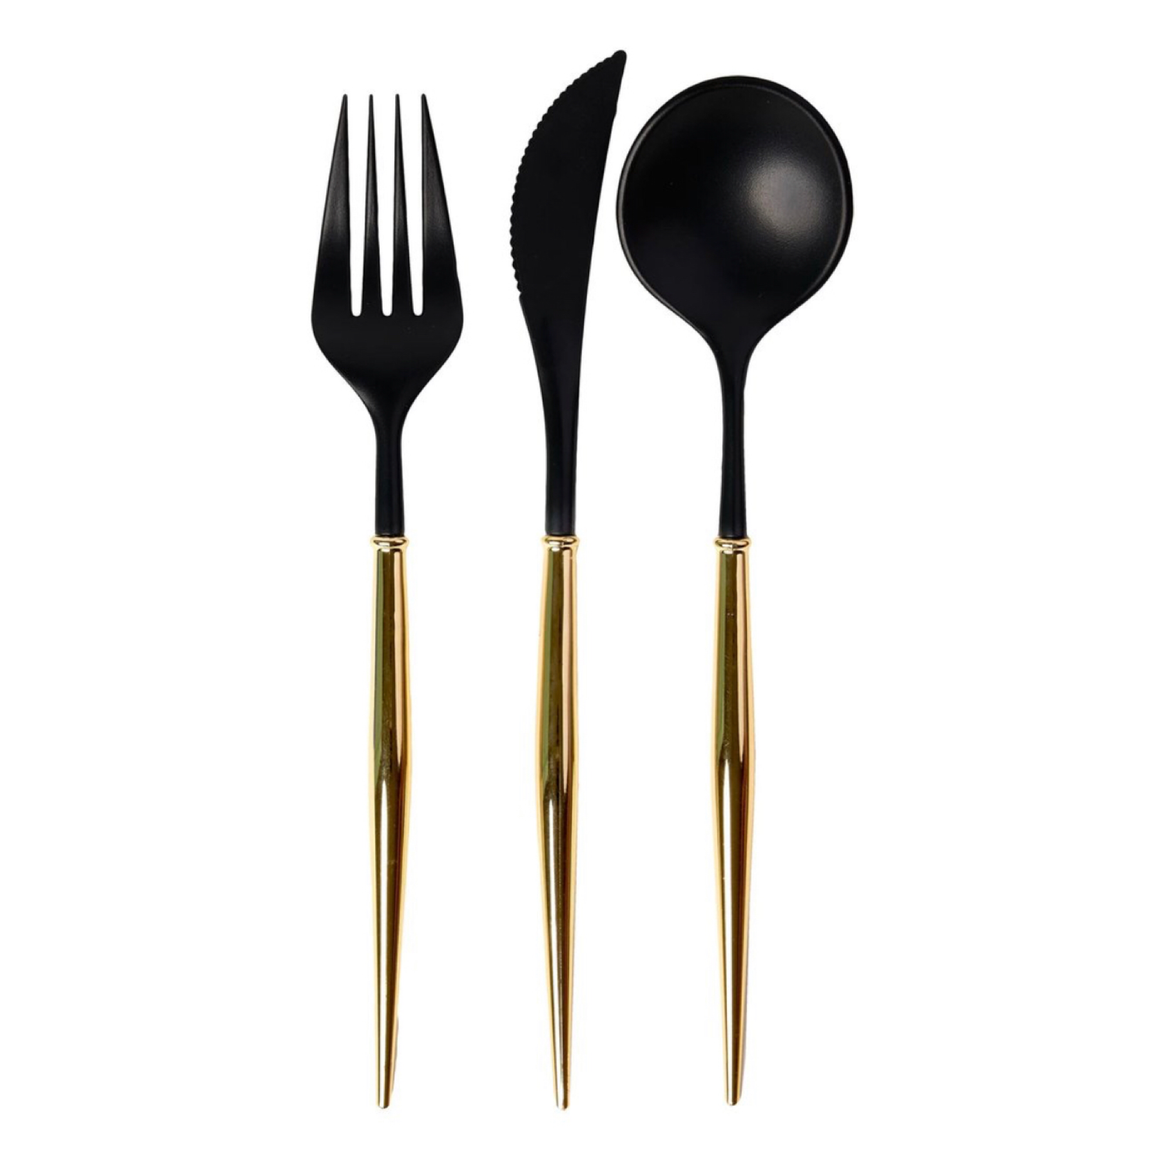 PREMIUM FLATWARE - REUSABLE BELLA BLACK + GOLD